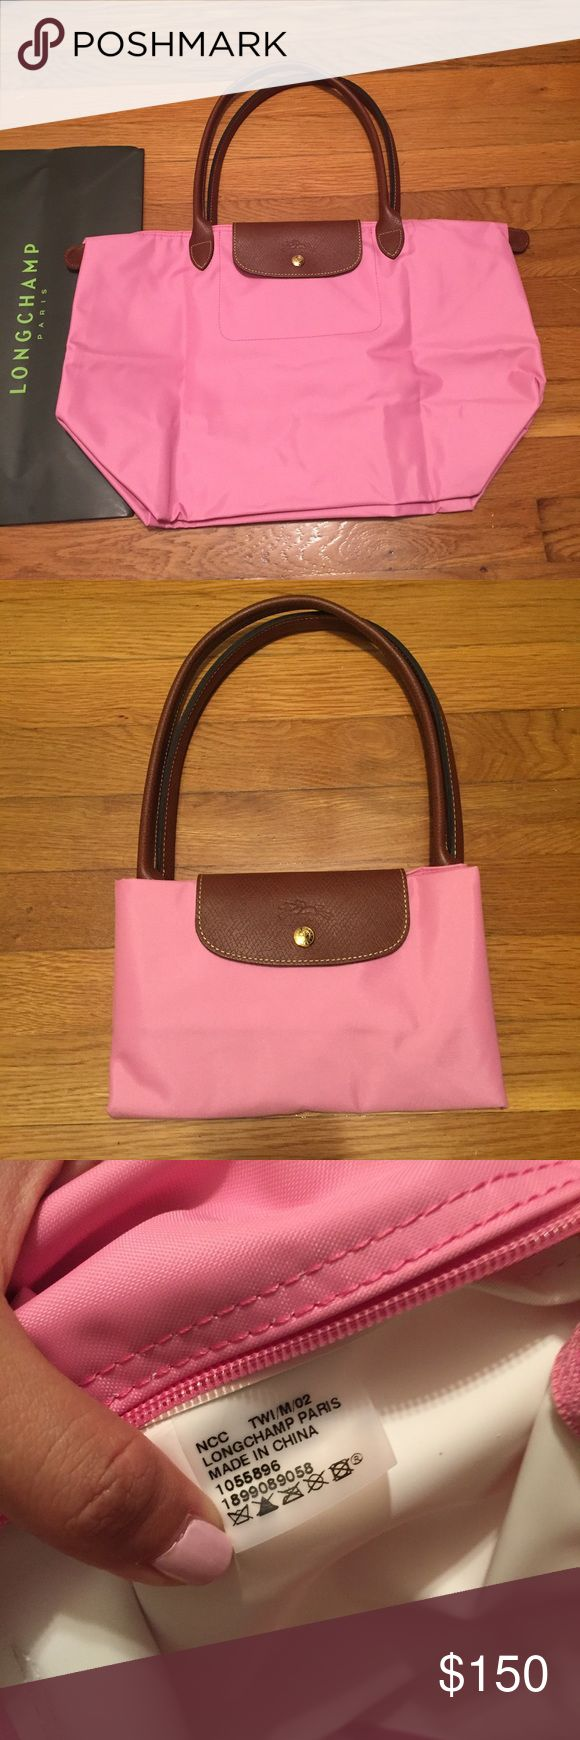 Longchamp Le Pliage Large Tote Pink Large tote with long handles. Recently purchased in Italy. 100% Authentic. Brand new condition. The color is a pink, almost like a pepto bismol pink color. This color is only found in Italy right now and not in the US. Not exactly sure what the name of the color is in English but you can see the color name on the receipt. The picture shows the true color. Firm on price due to rare color in the US. Longchamp Bags Totes